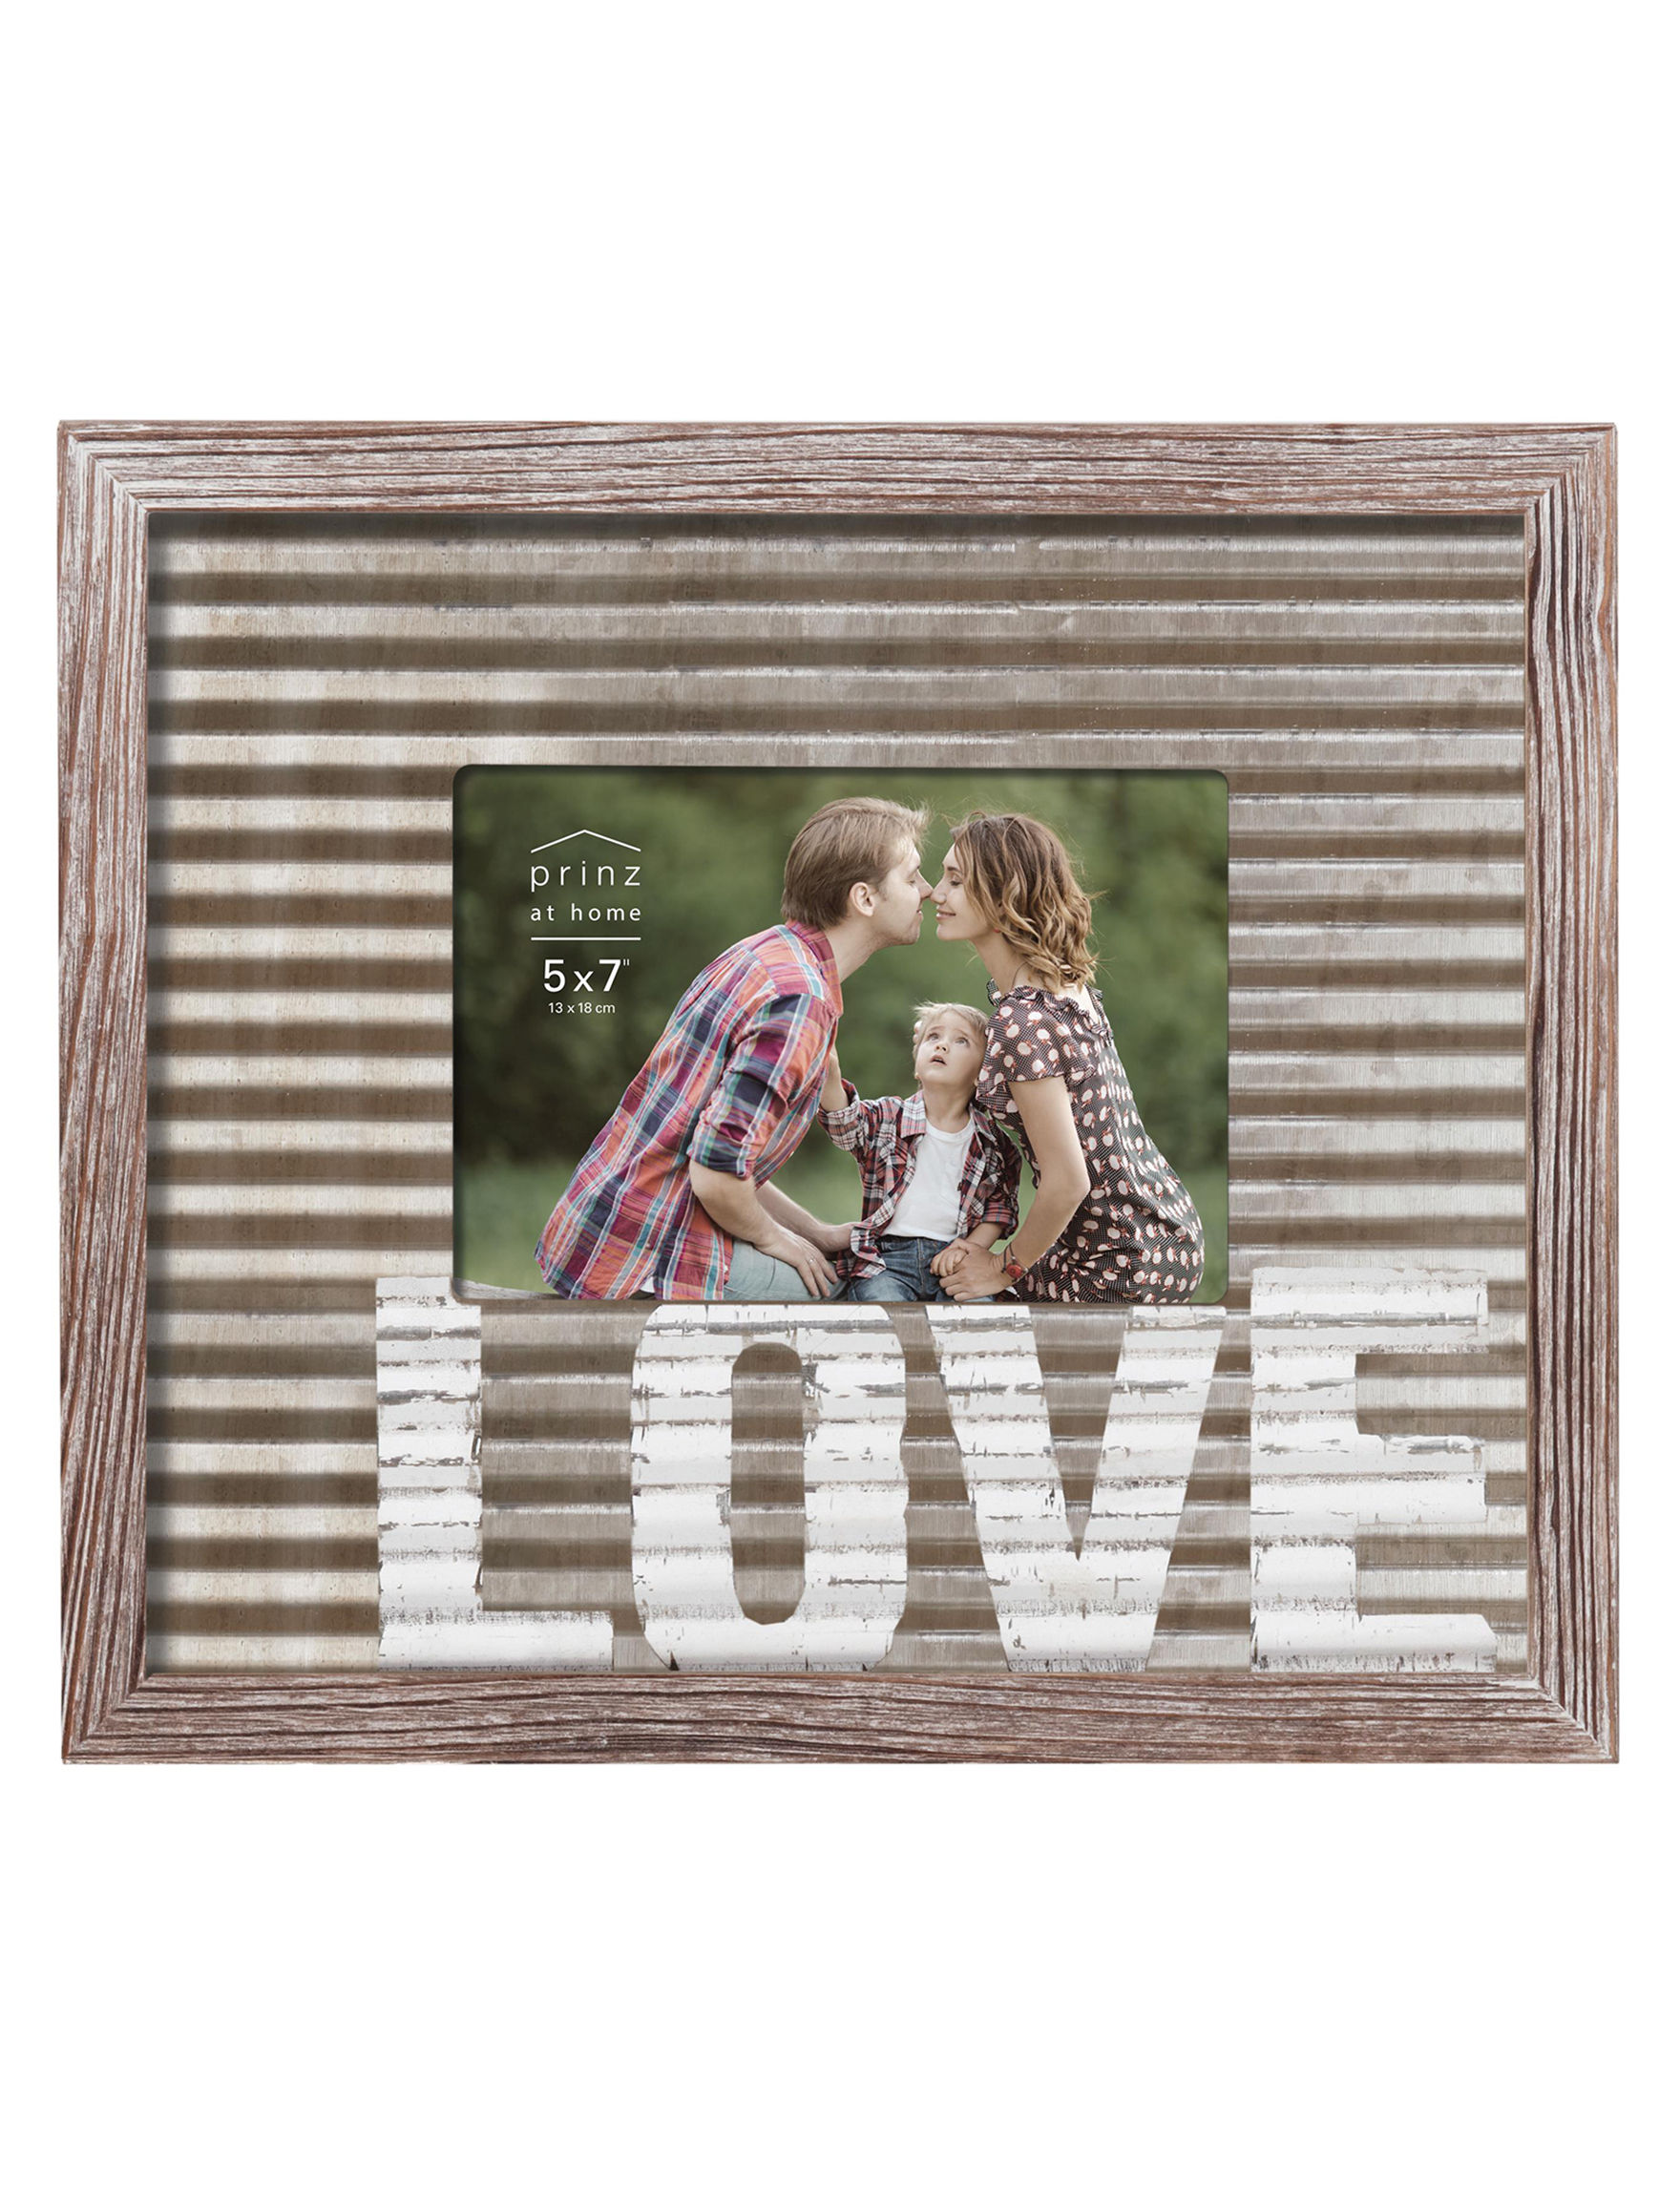 New View Brown Decorative Objects Frames & Shadow Boxes